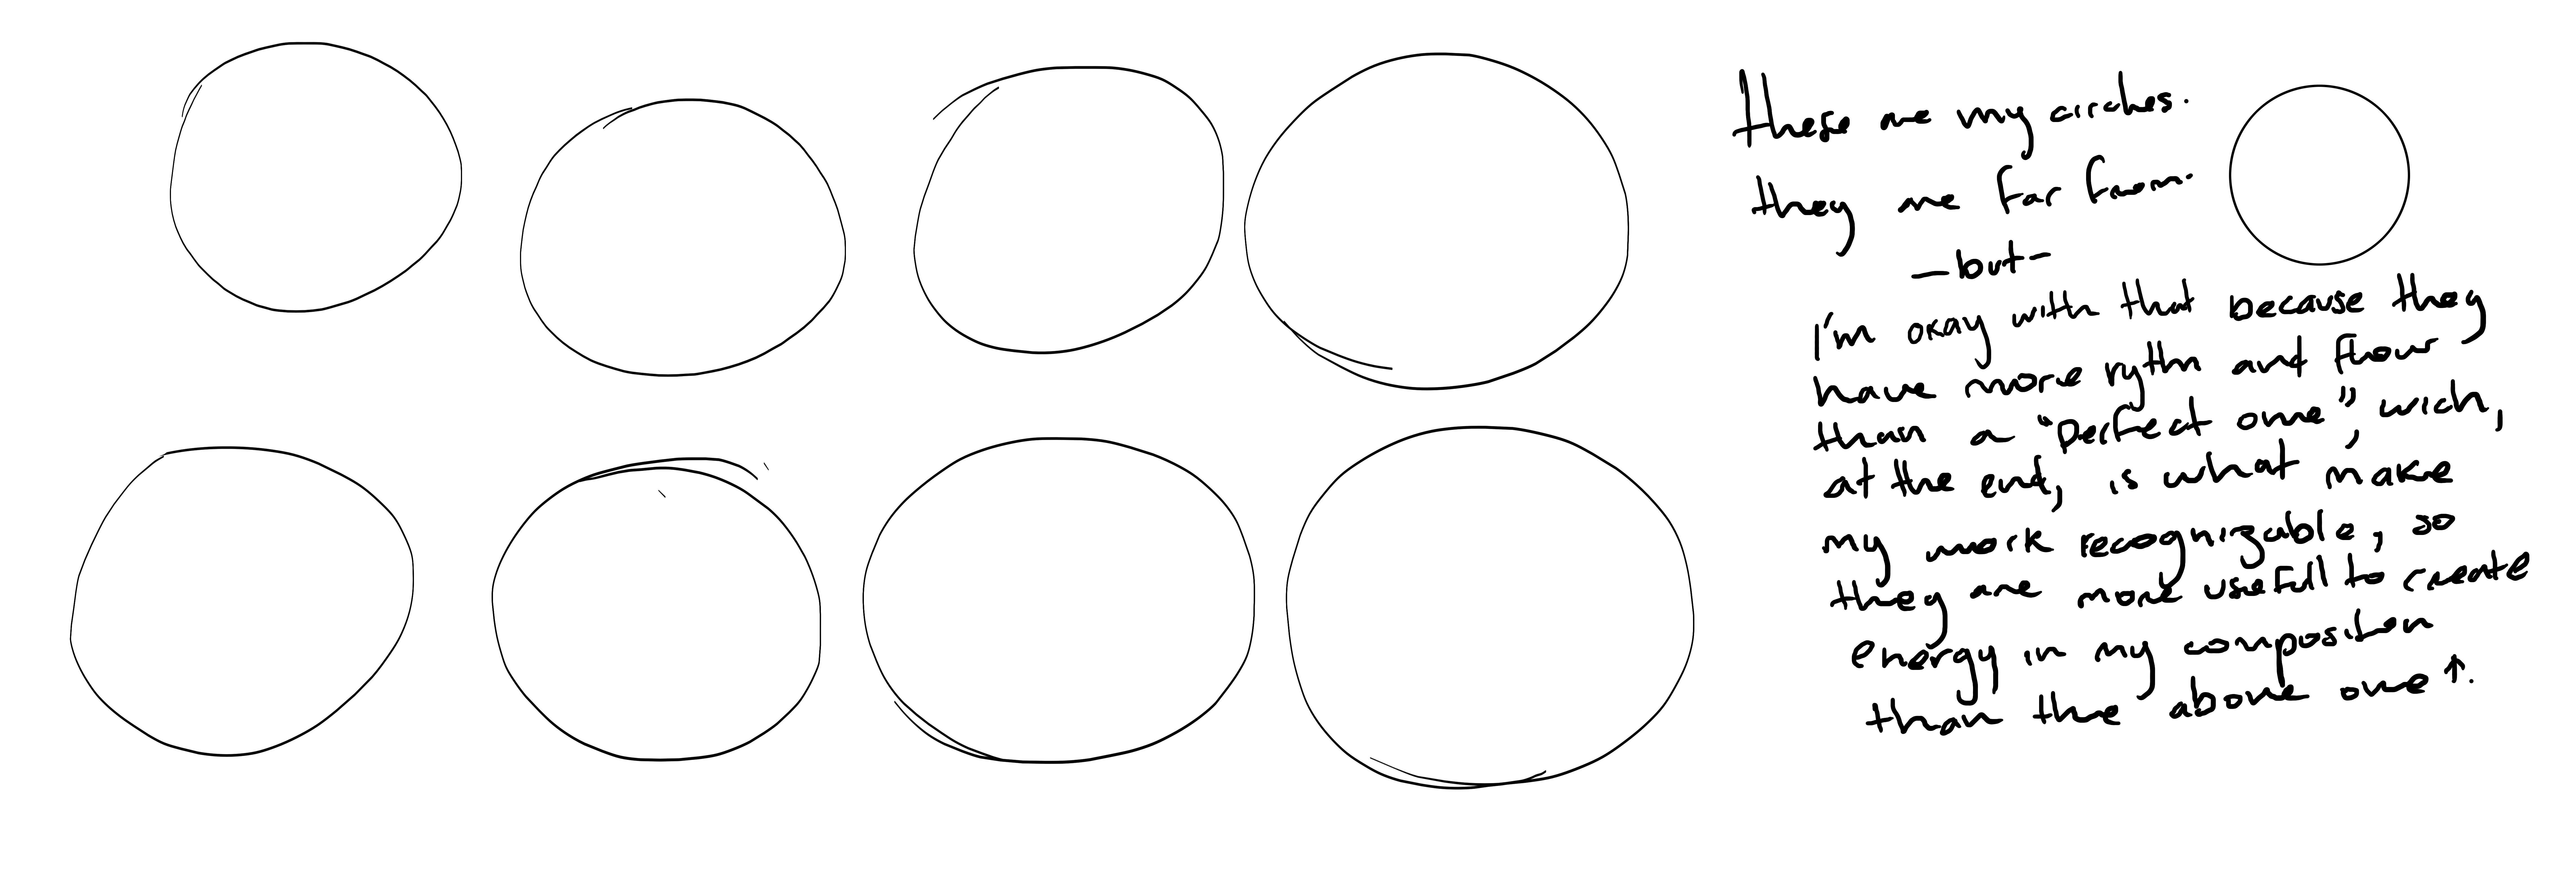 Tips on drawing a circle? - General - Forums - Cubebrush